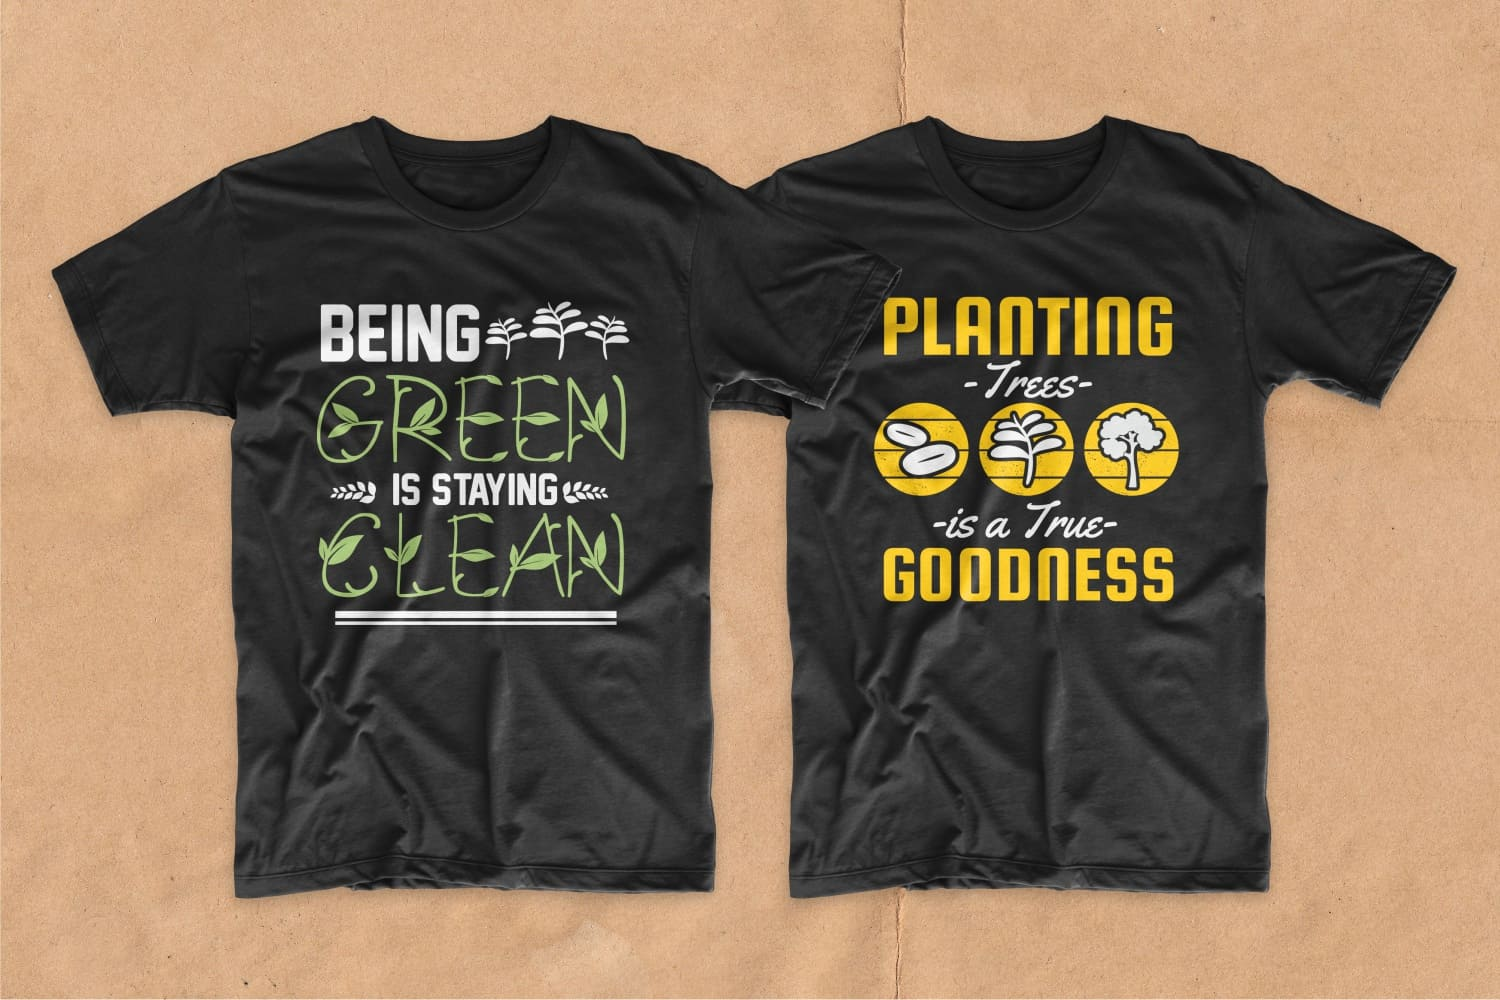 Two black T-shirts with green and yellow lettering.